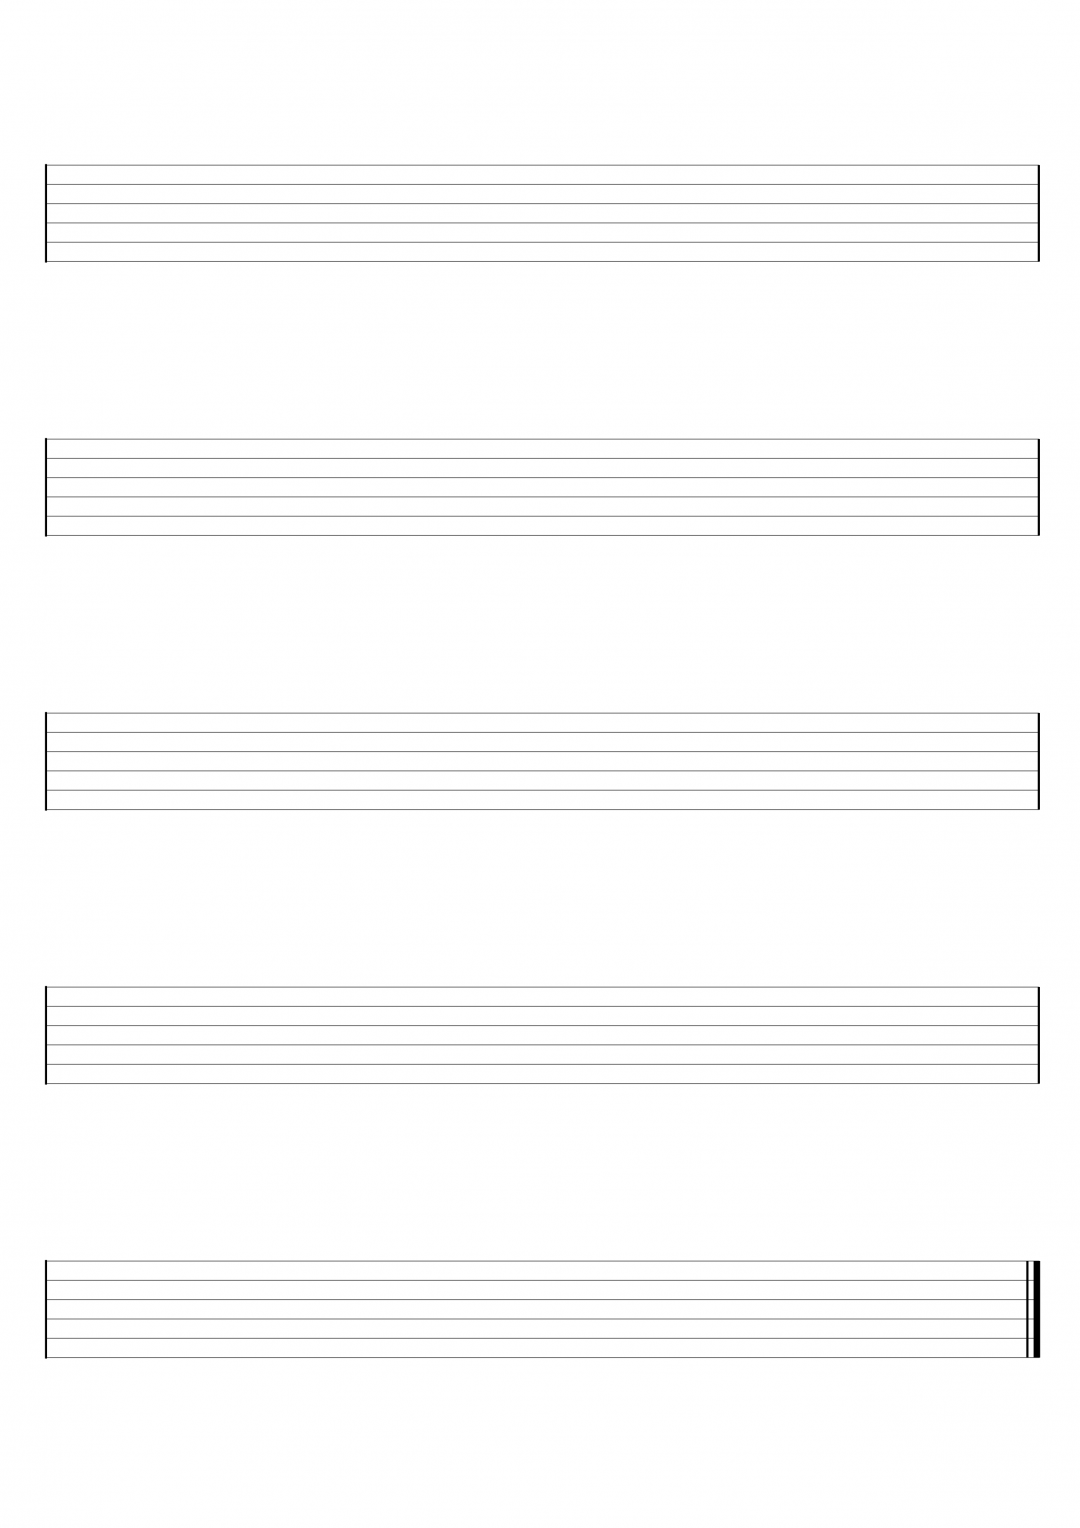 Blank Guitar, Ukulele and Bass Sheet Music For Hand Writing Guitar Tab or Chord Charts – Free PDF